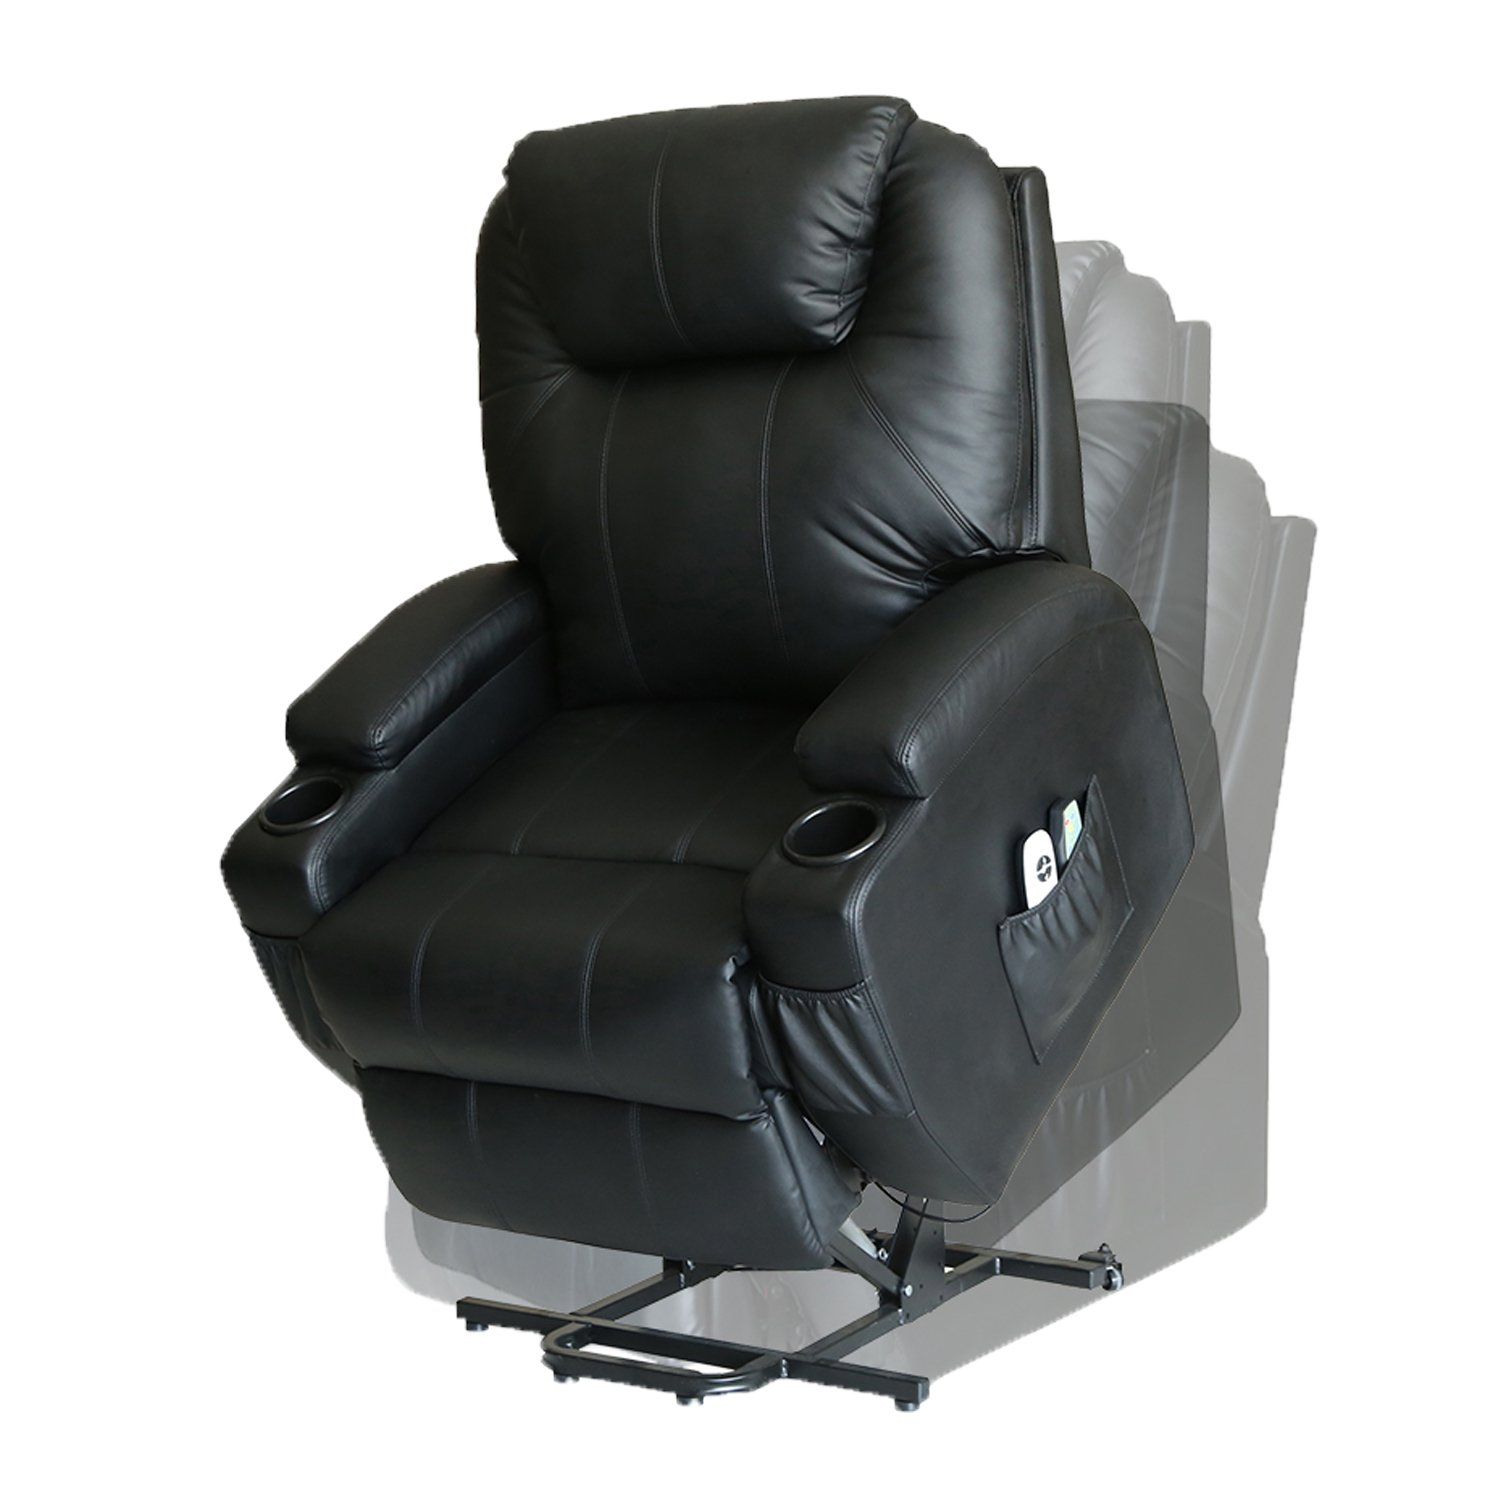 MAGIC UNION Wall Hugger Power Lift Massage Recliner Heated Vibrating Chair with 2 Controls Wheels - Black